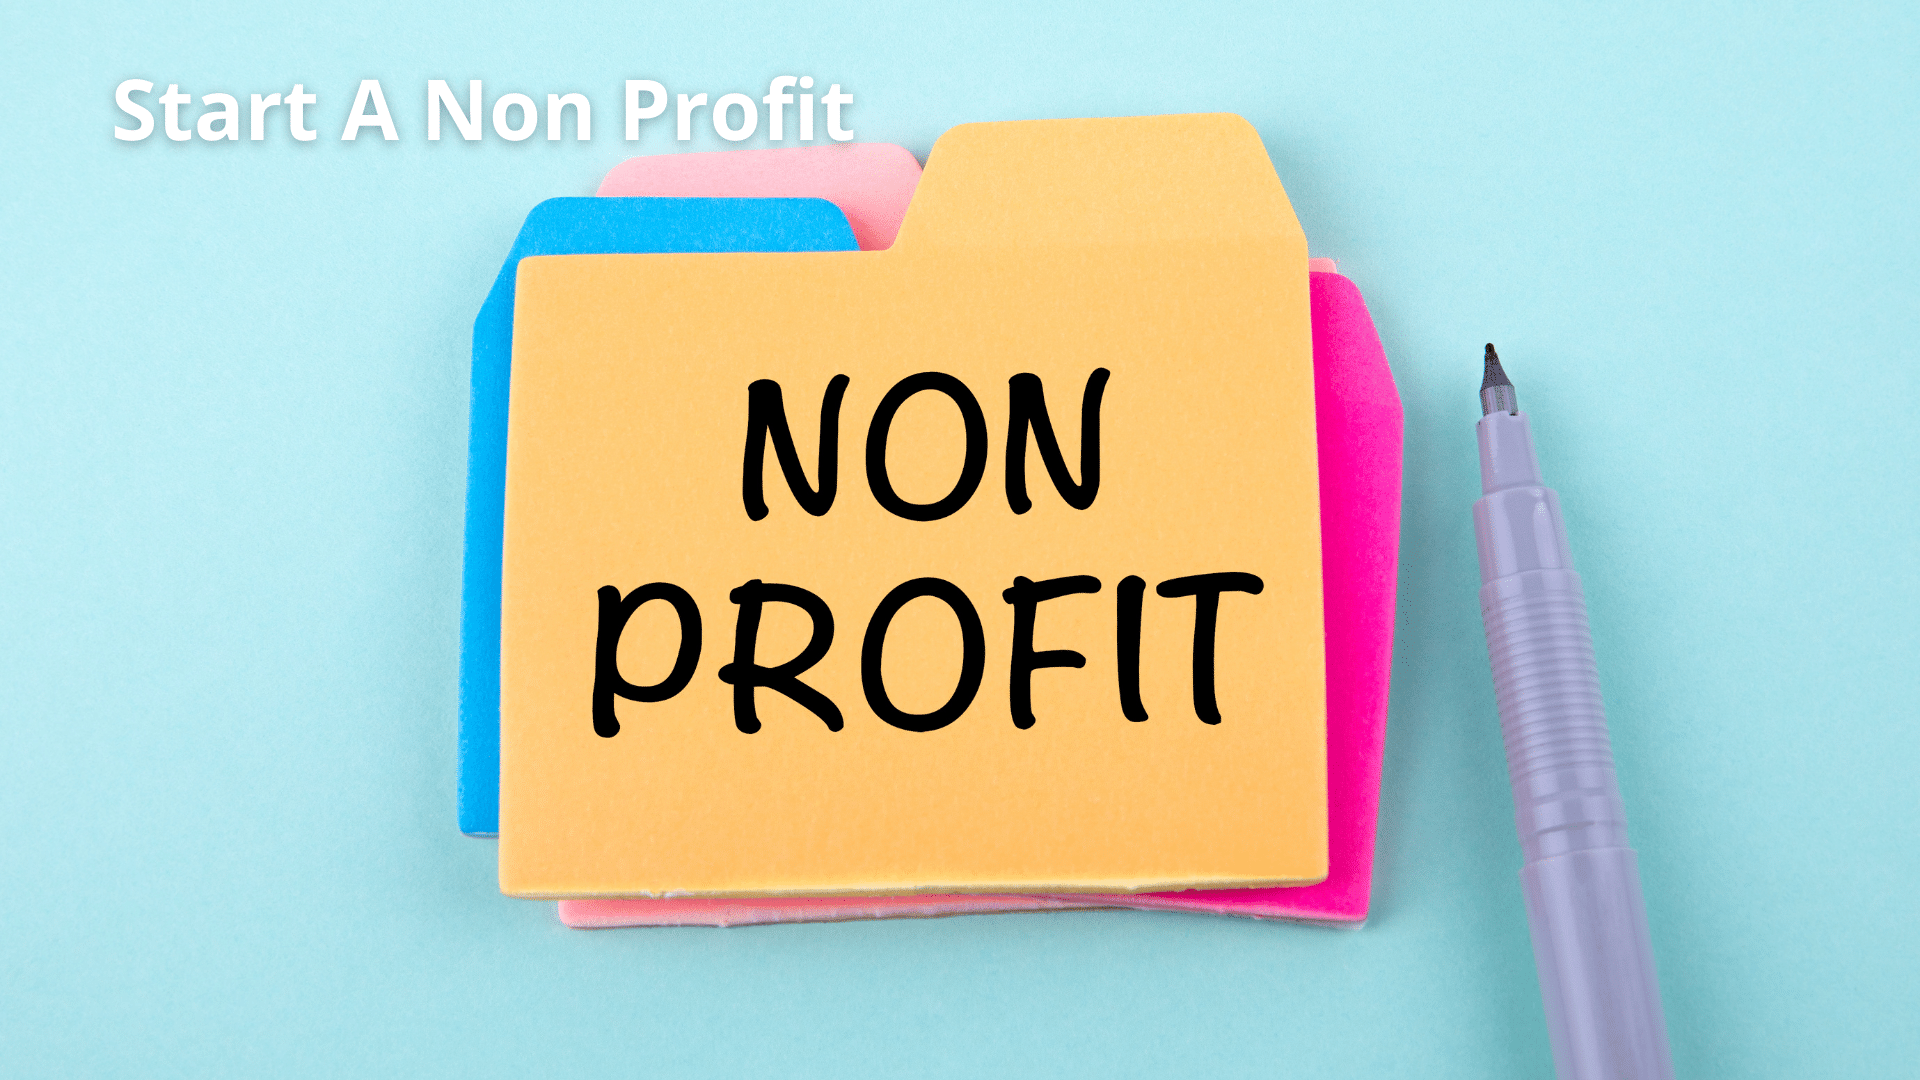 How To Start A Non Profit - An Overview Of The Process 8